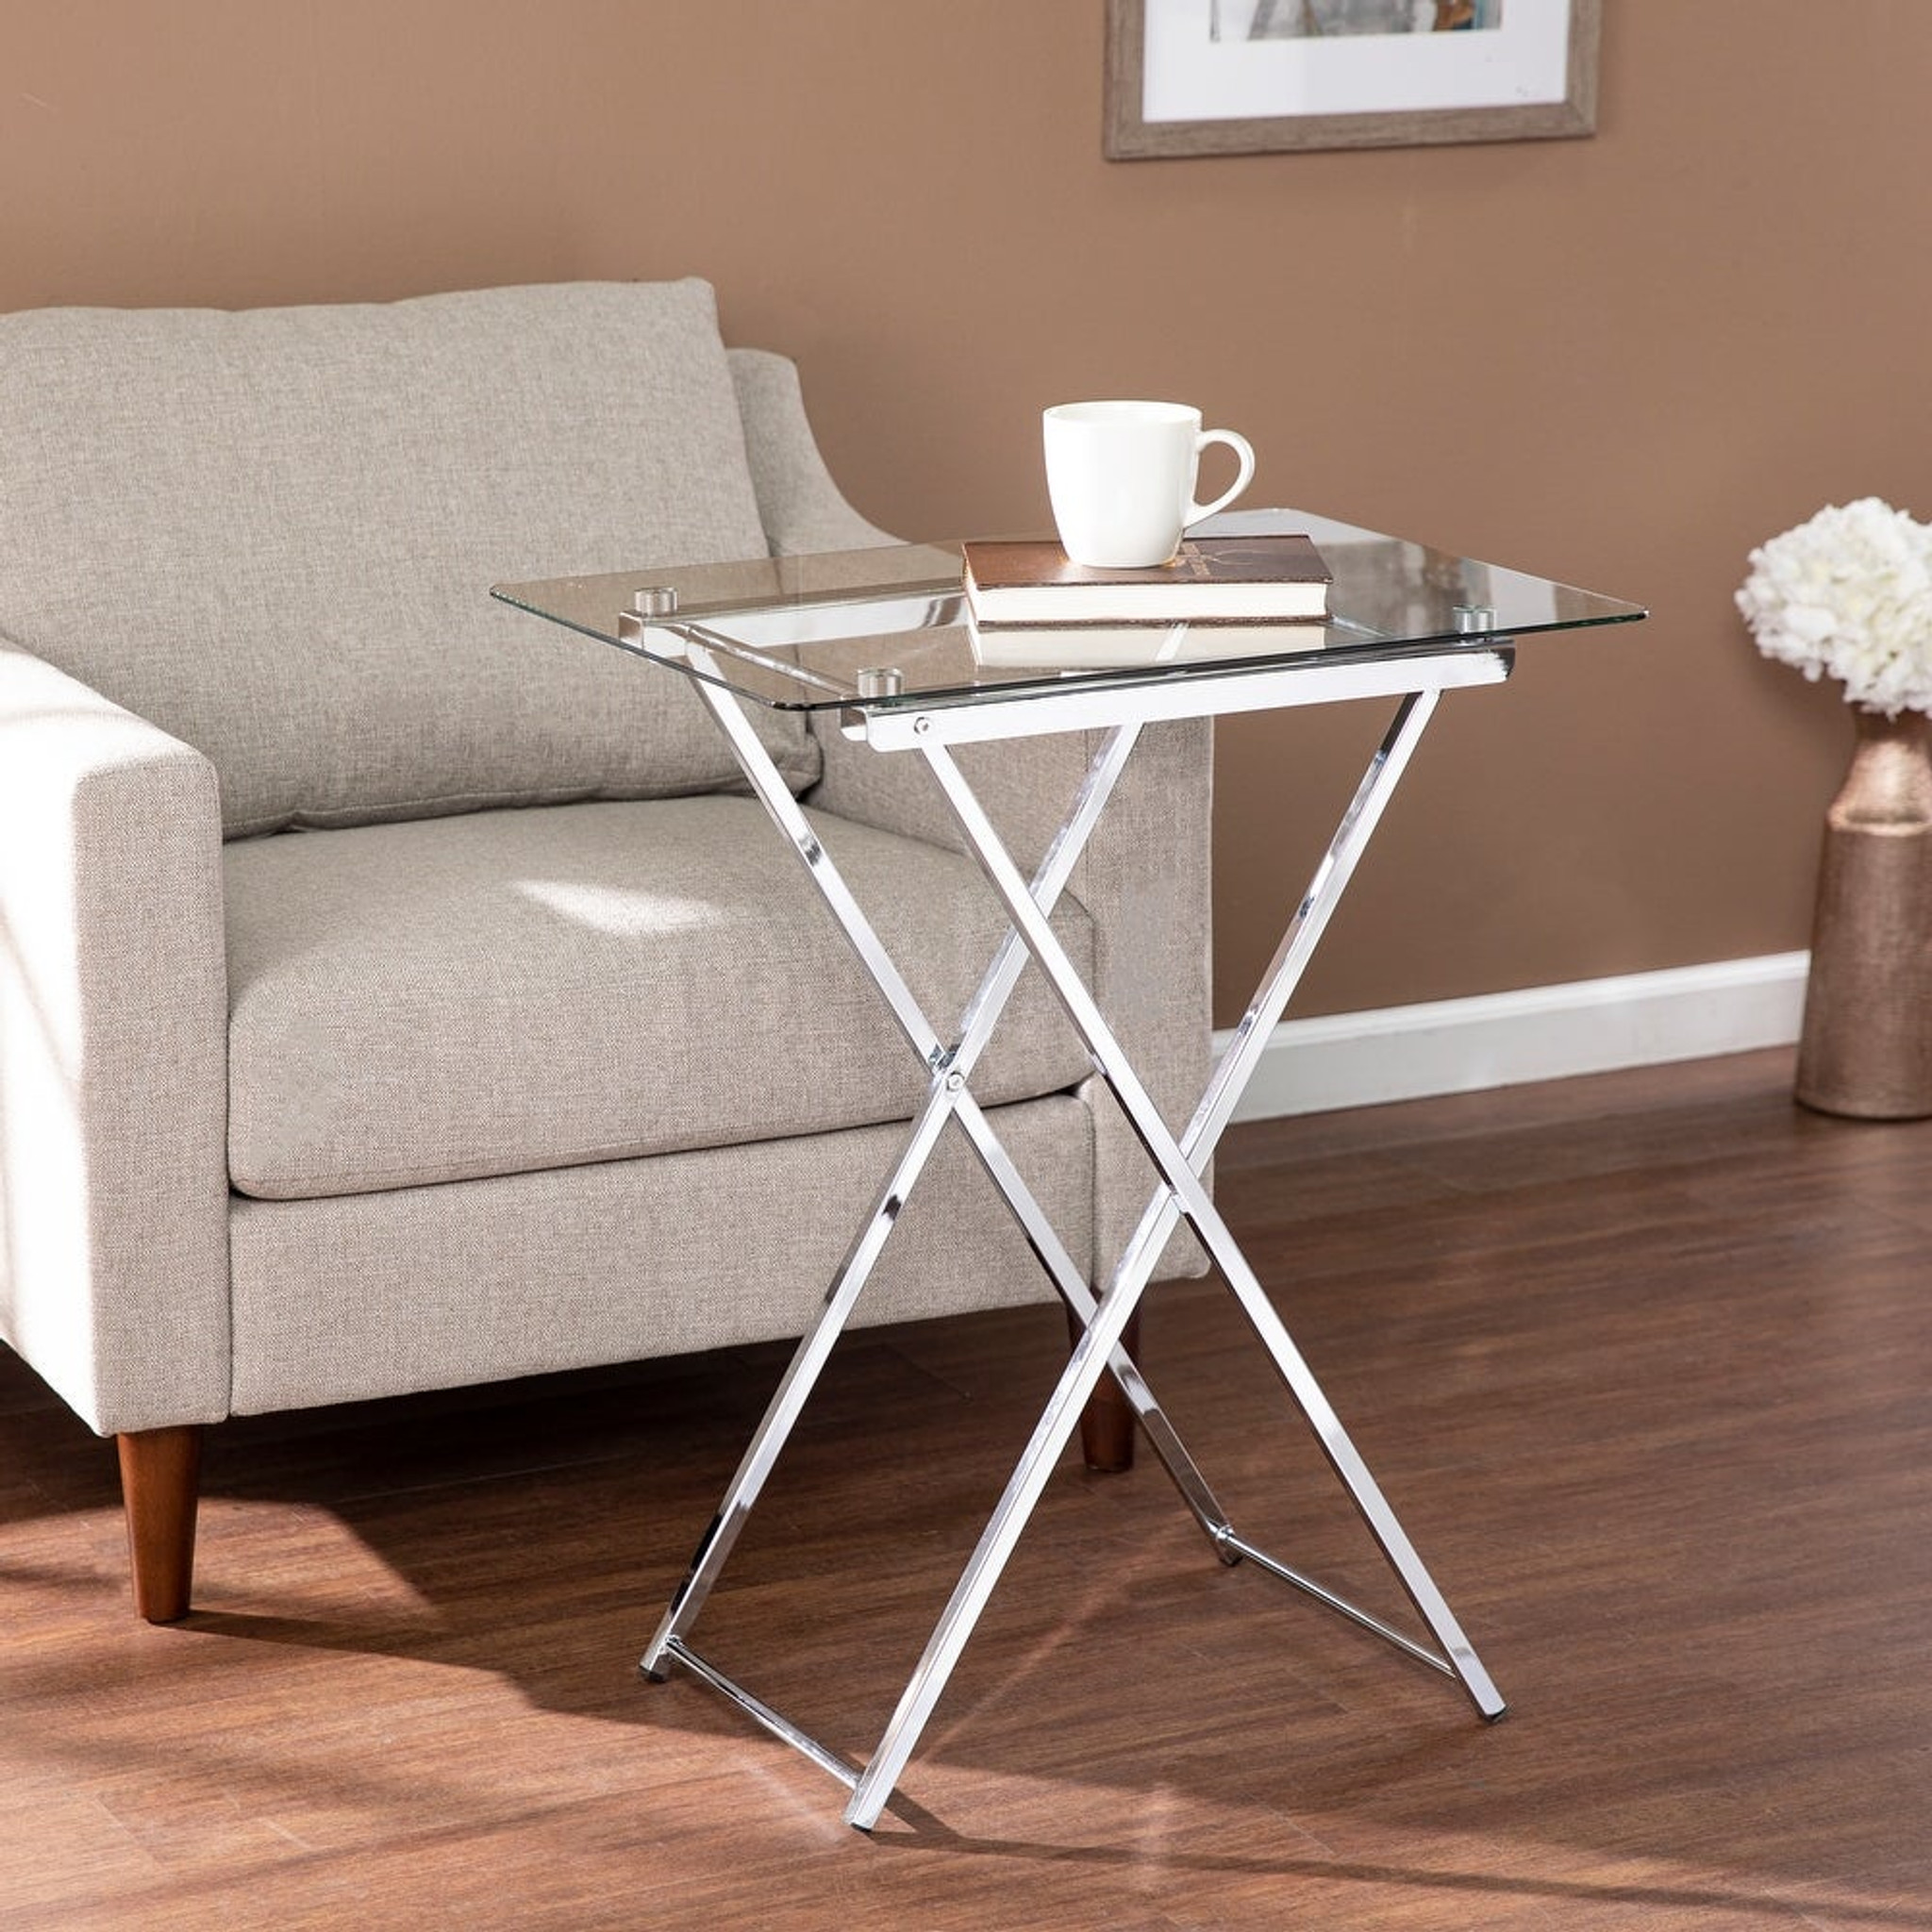 Chrome and Glass Top Folding Tray Table